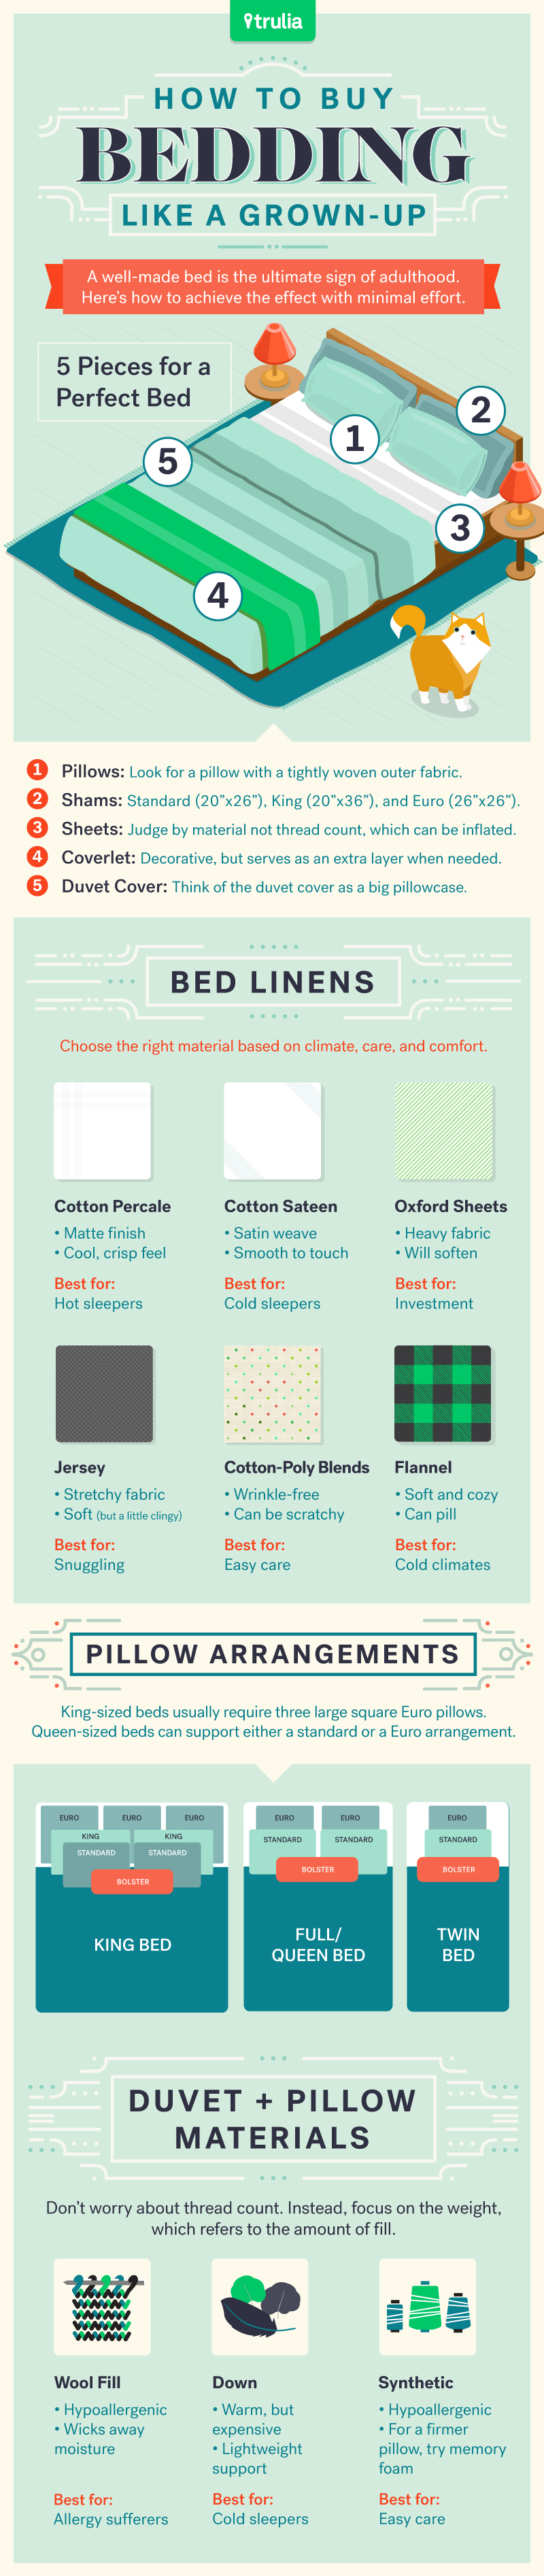 Trulia-Miles-Quillen-Infographic-How-To-Buy-Bedding-Like-A-Grown-Up